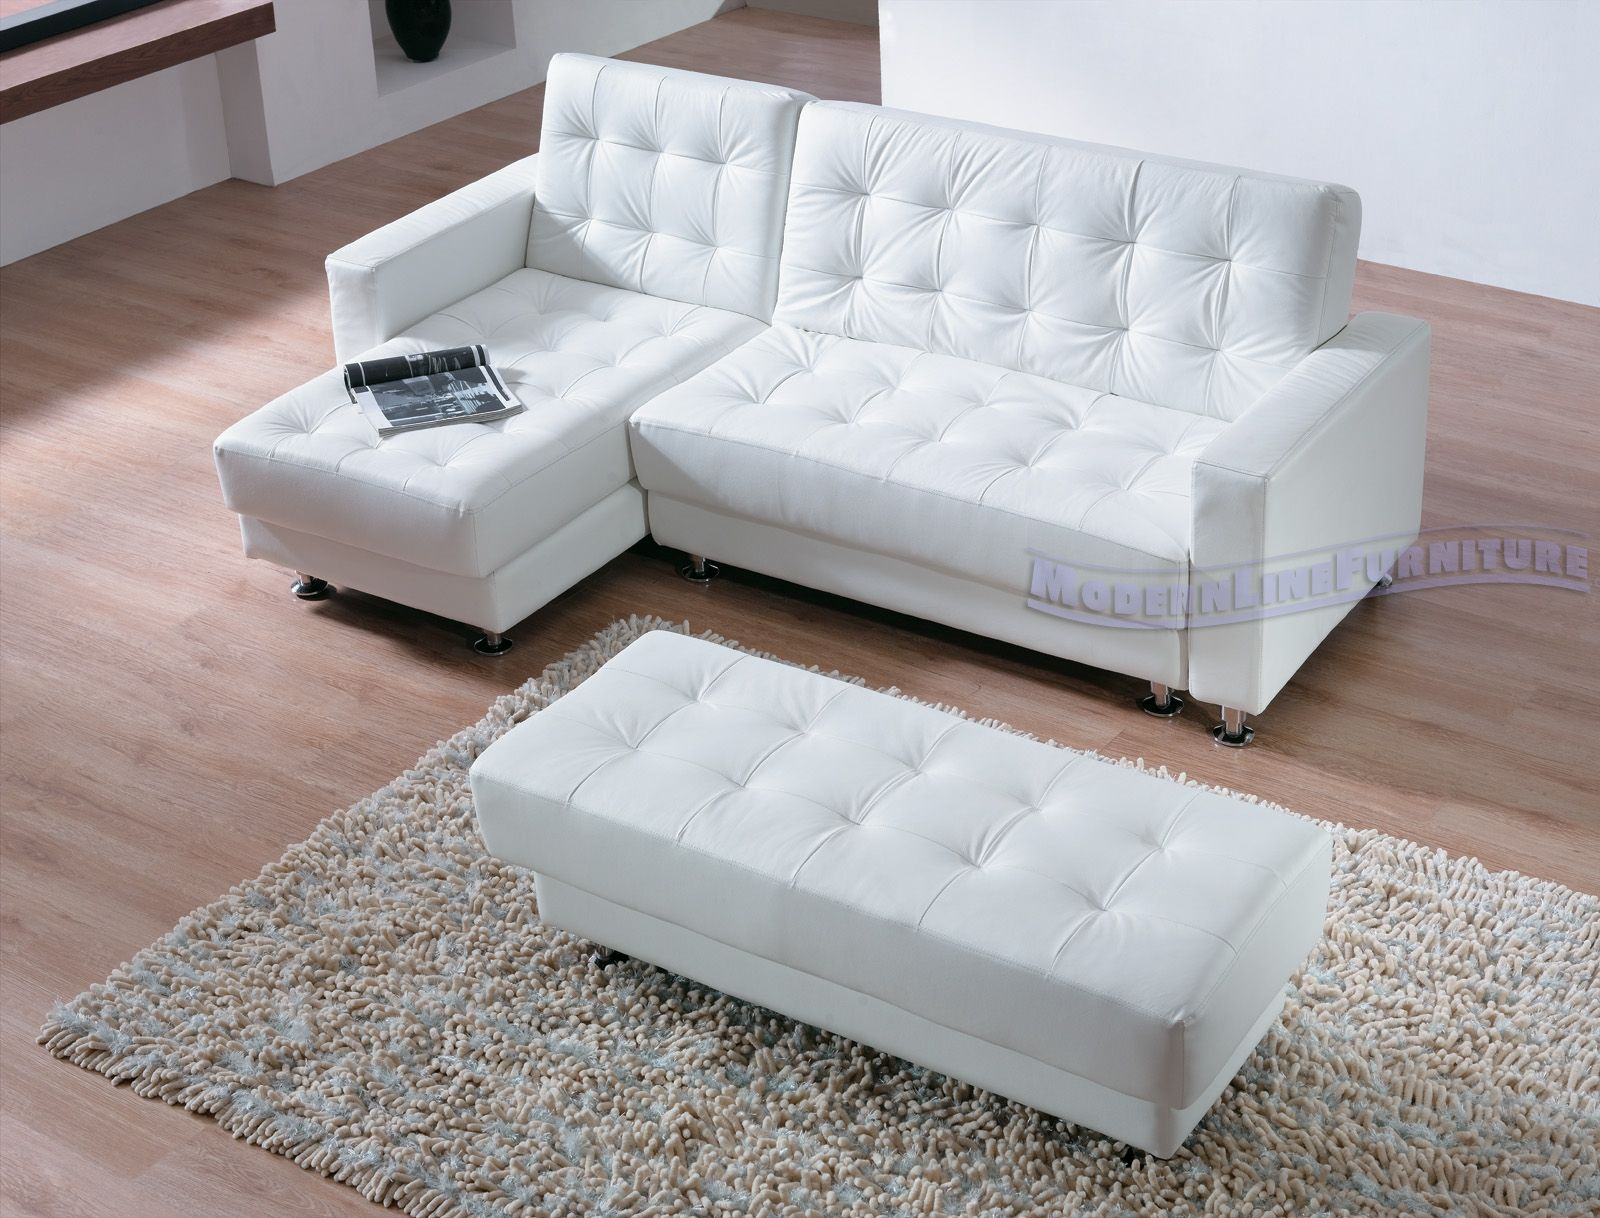 Modern Line Furniture - Small Couch Bed Set $900